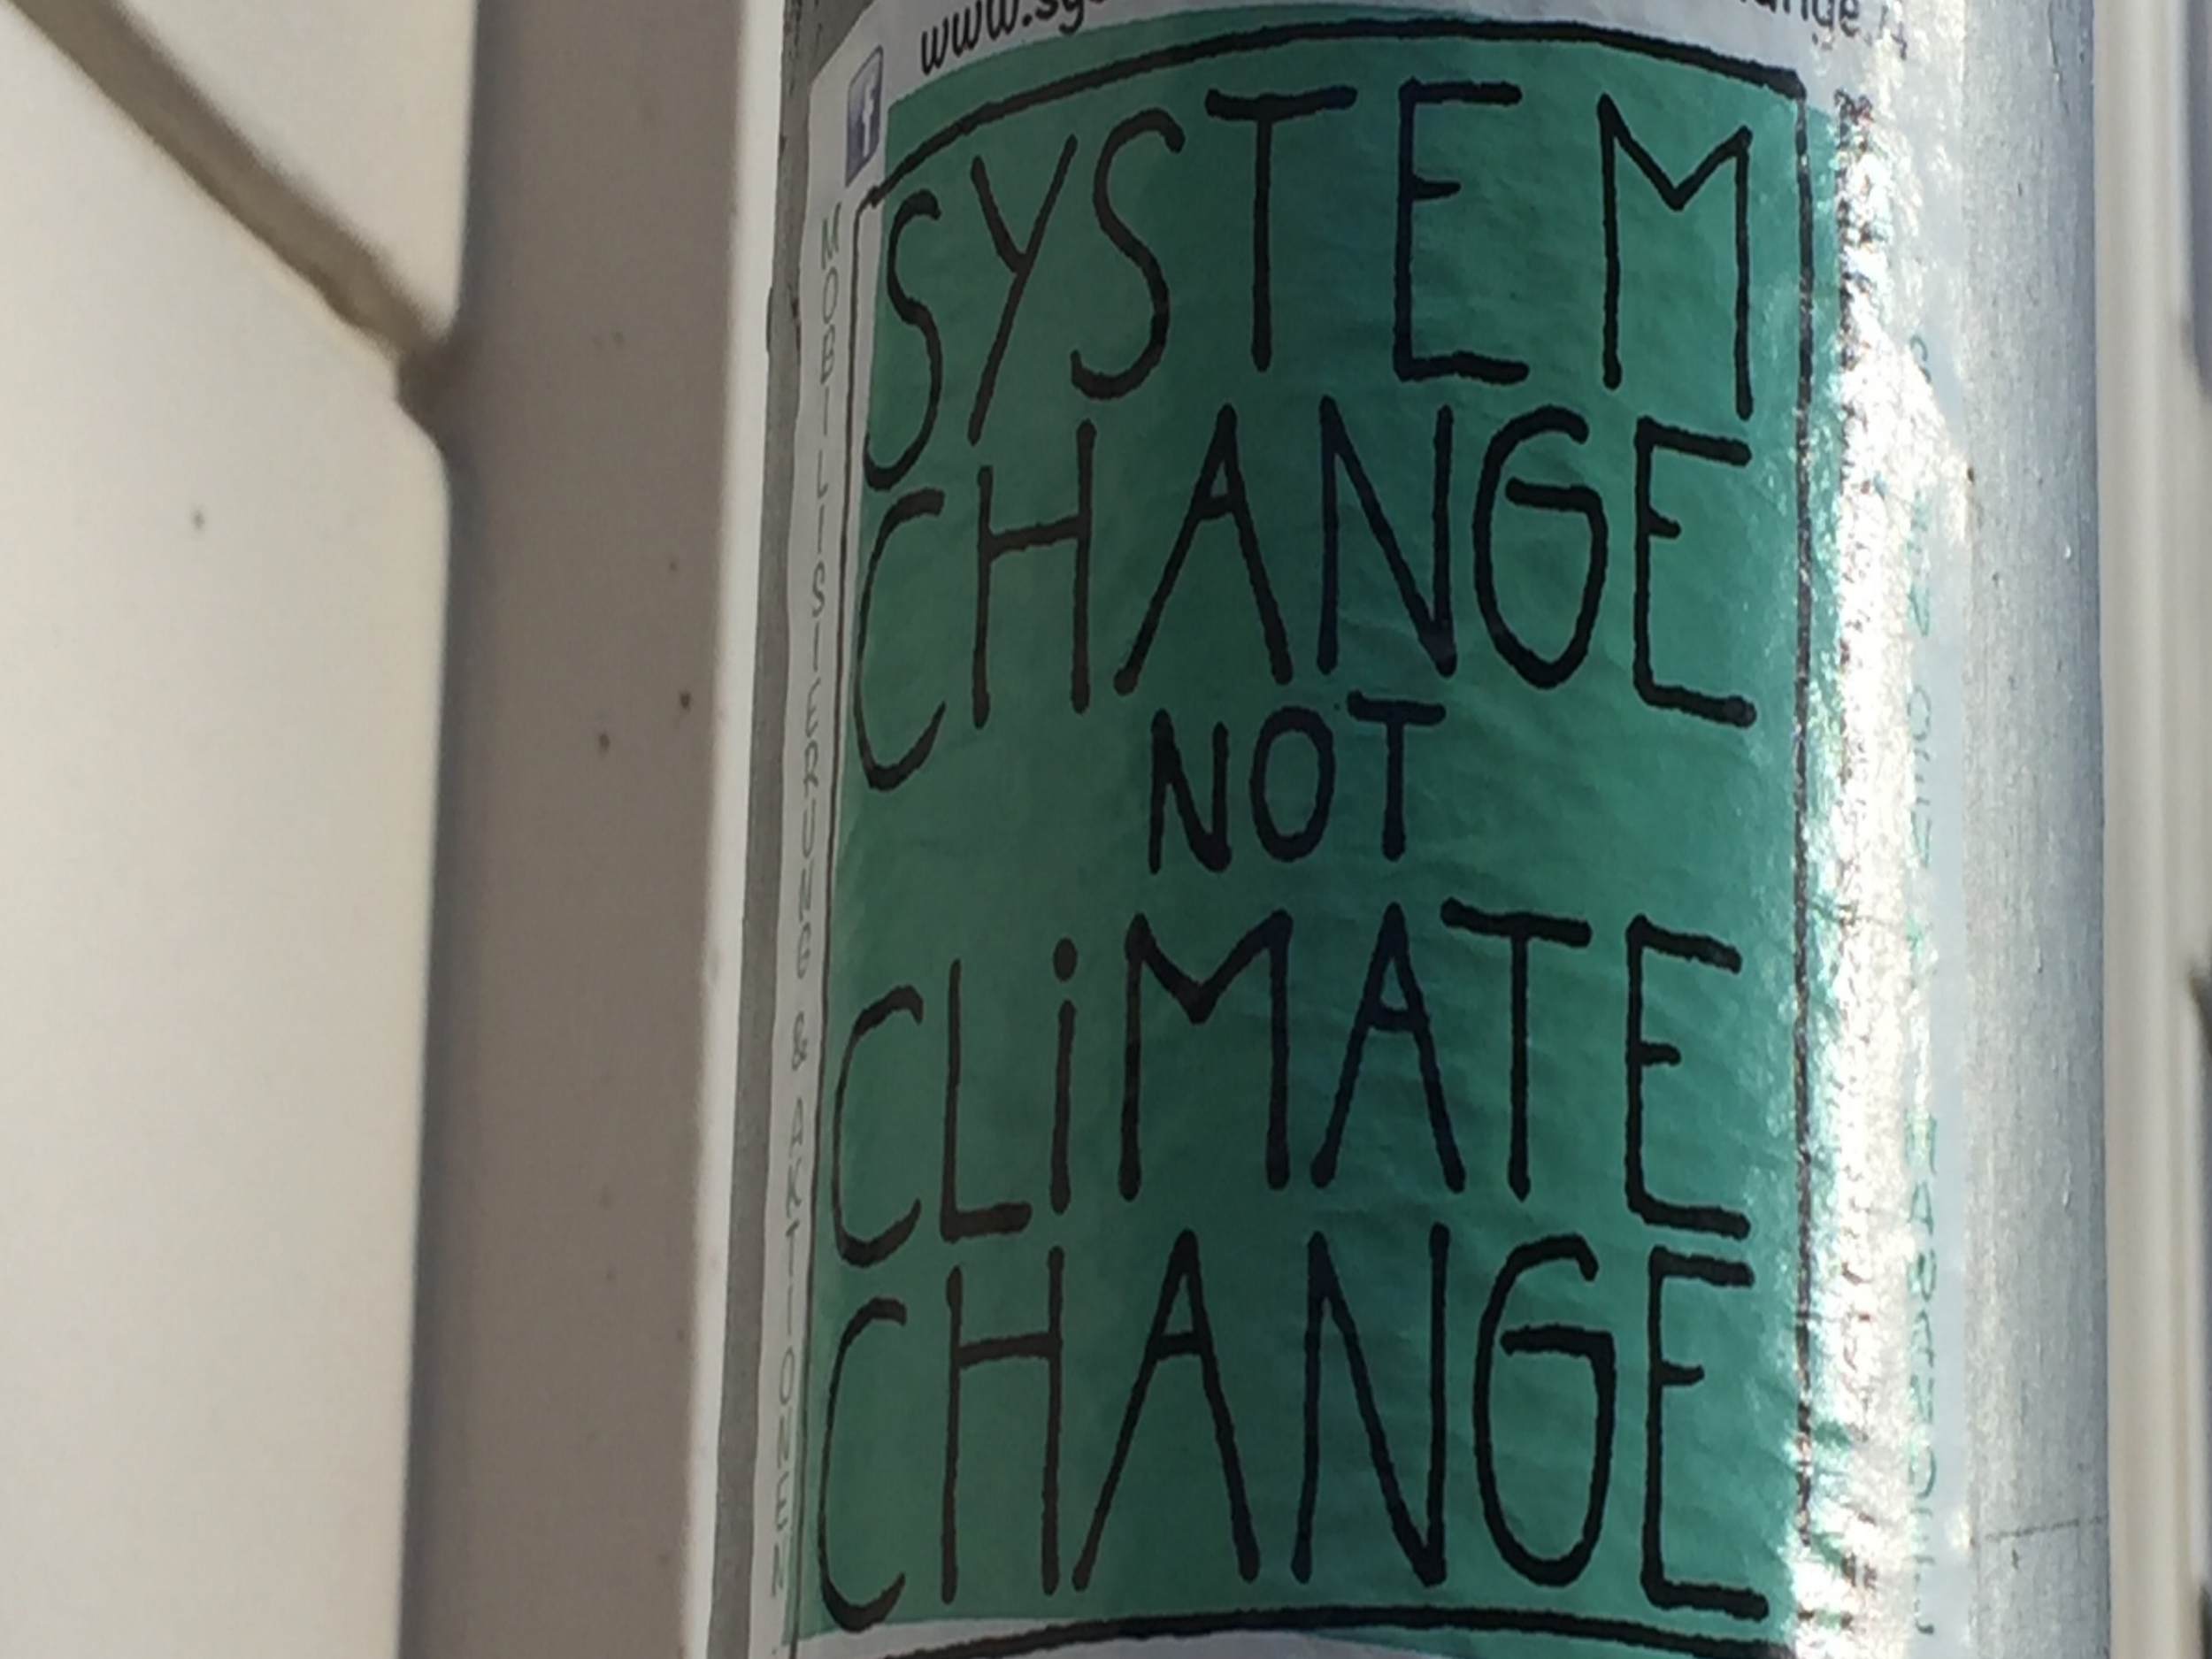 Copy of System Change Not Climate Change - Ashville, NC